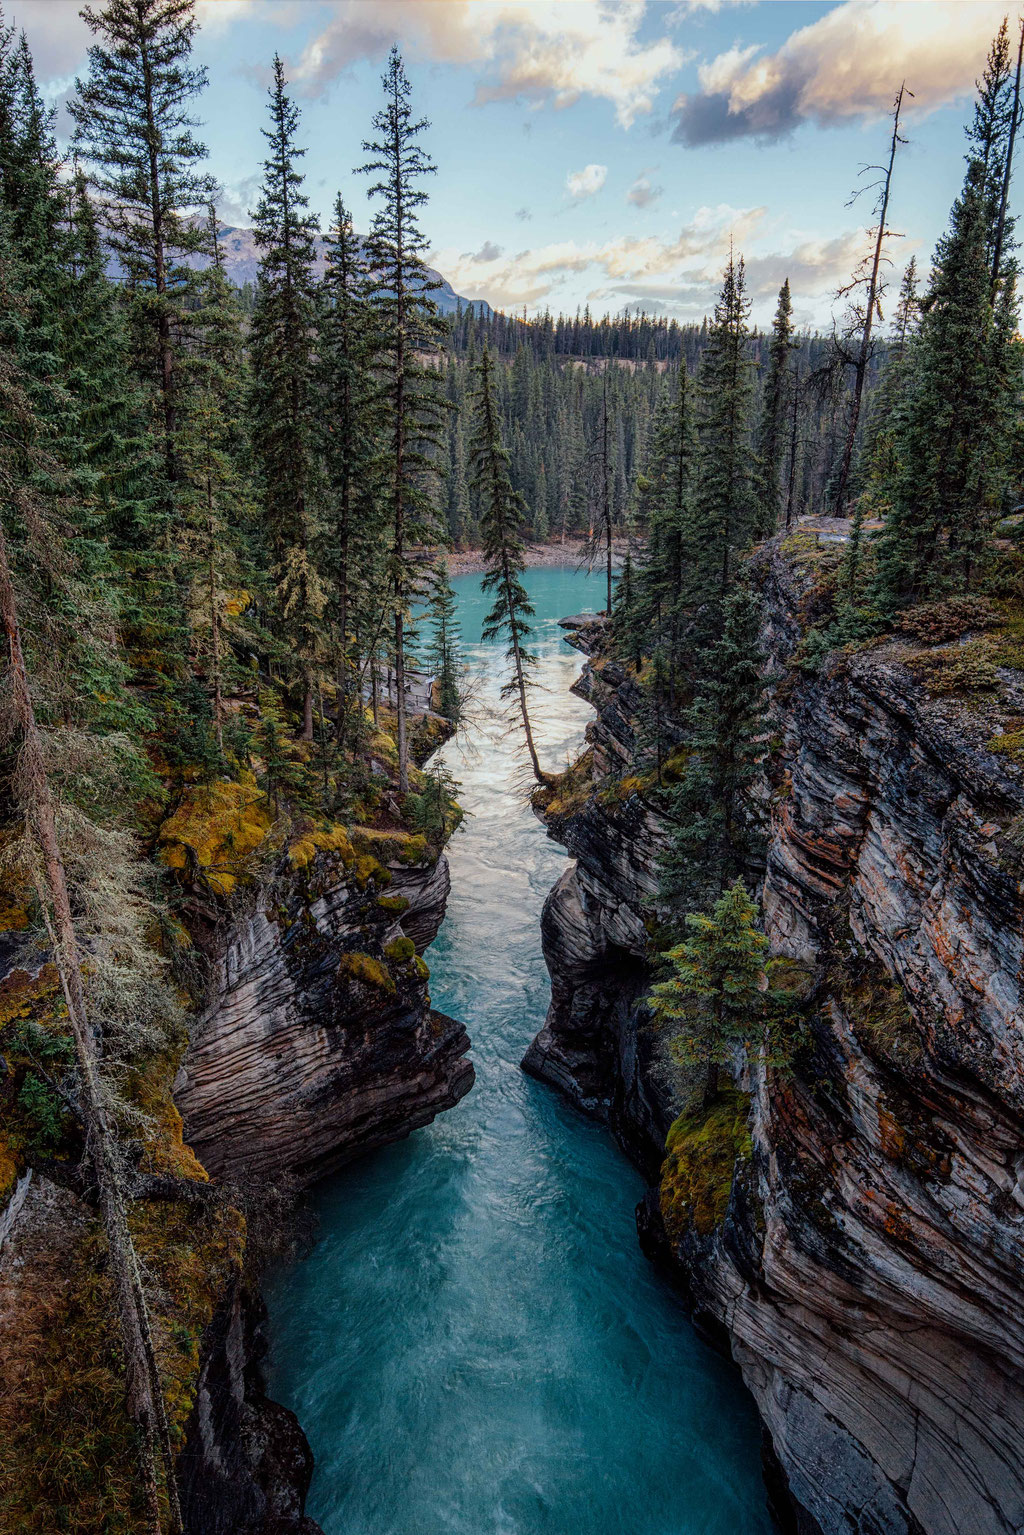 Athabasca Canyon. Two week road trip itinerary around the Canadian Rockies